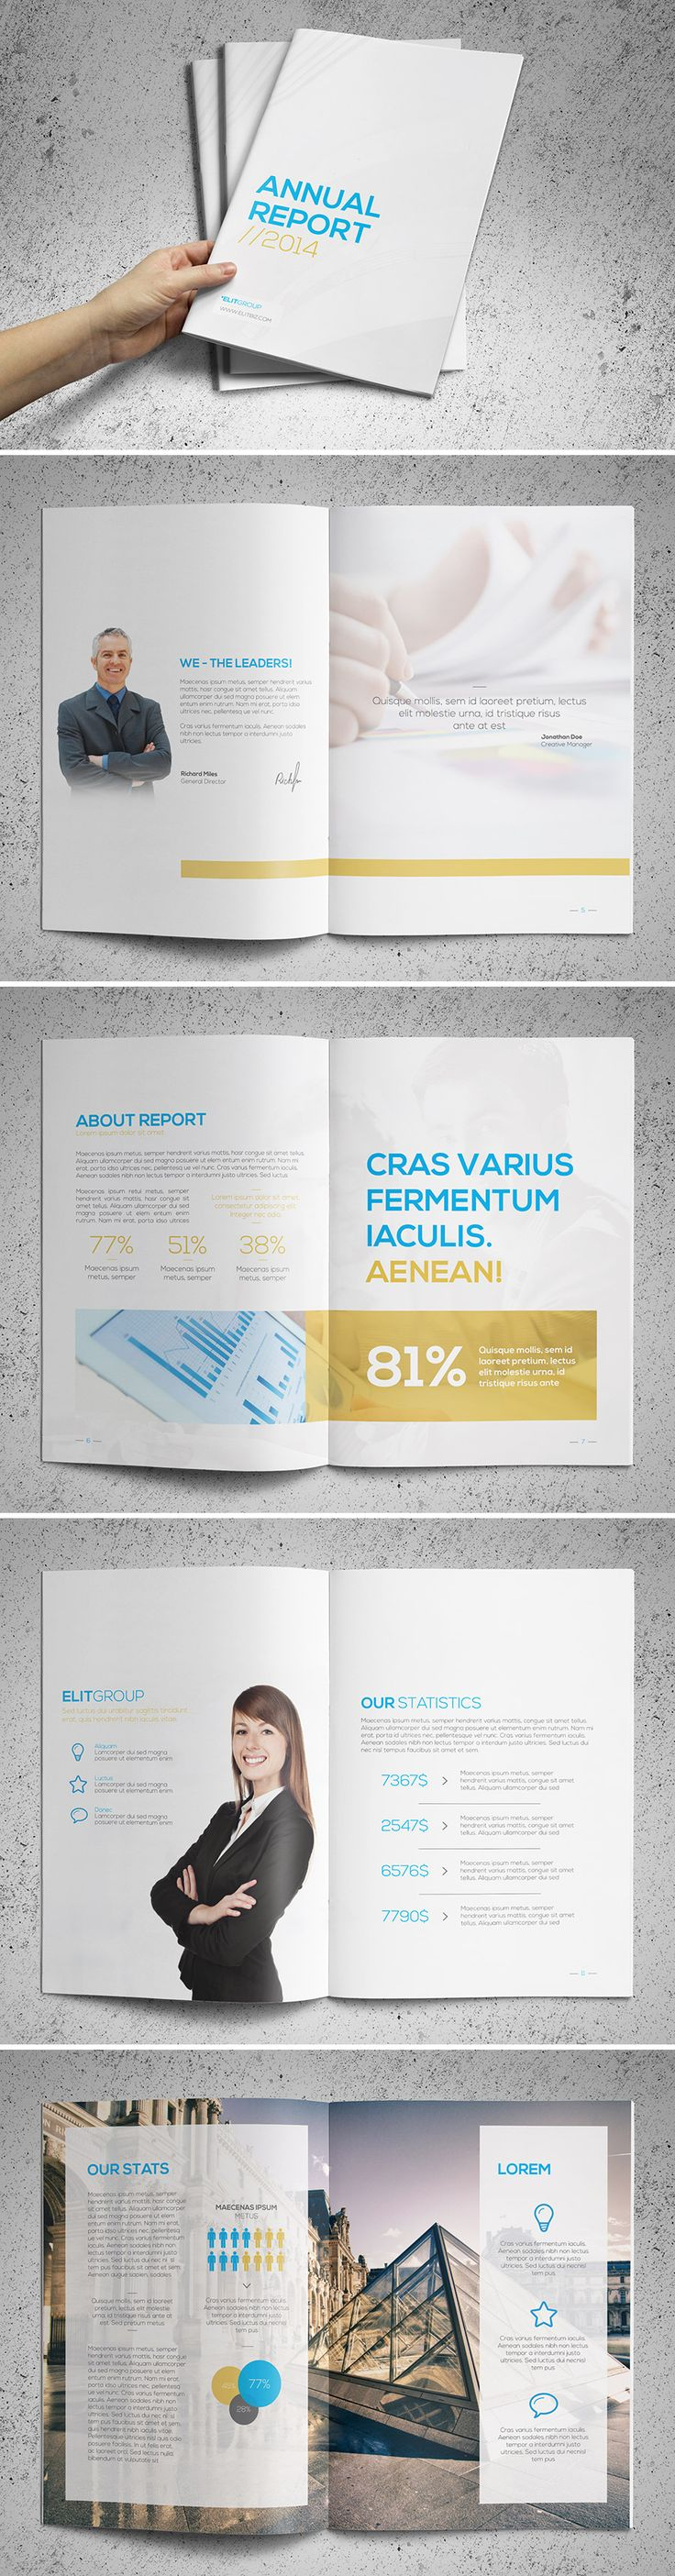 17-clean-annual-report